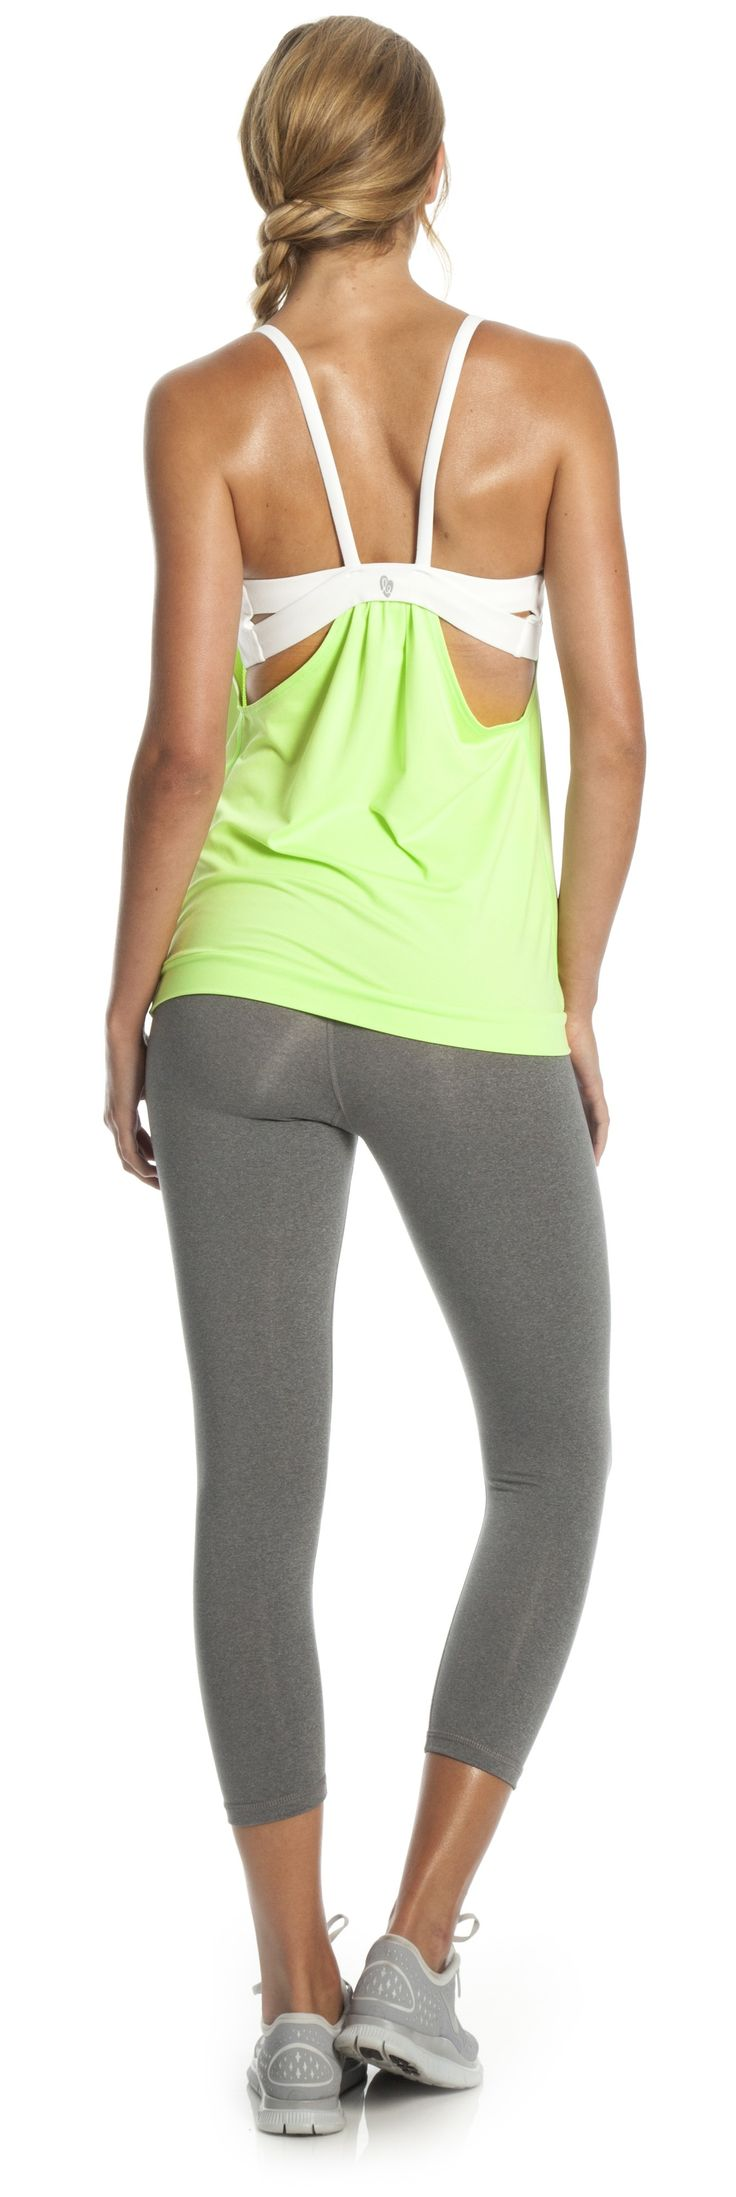 The range includes all the fitness clothing classics, from sports bras to leggings and trainers. The designs are not very exciting, but still pretty cute. Pricing: Prices range from £ to £